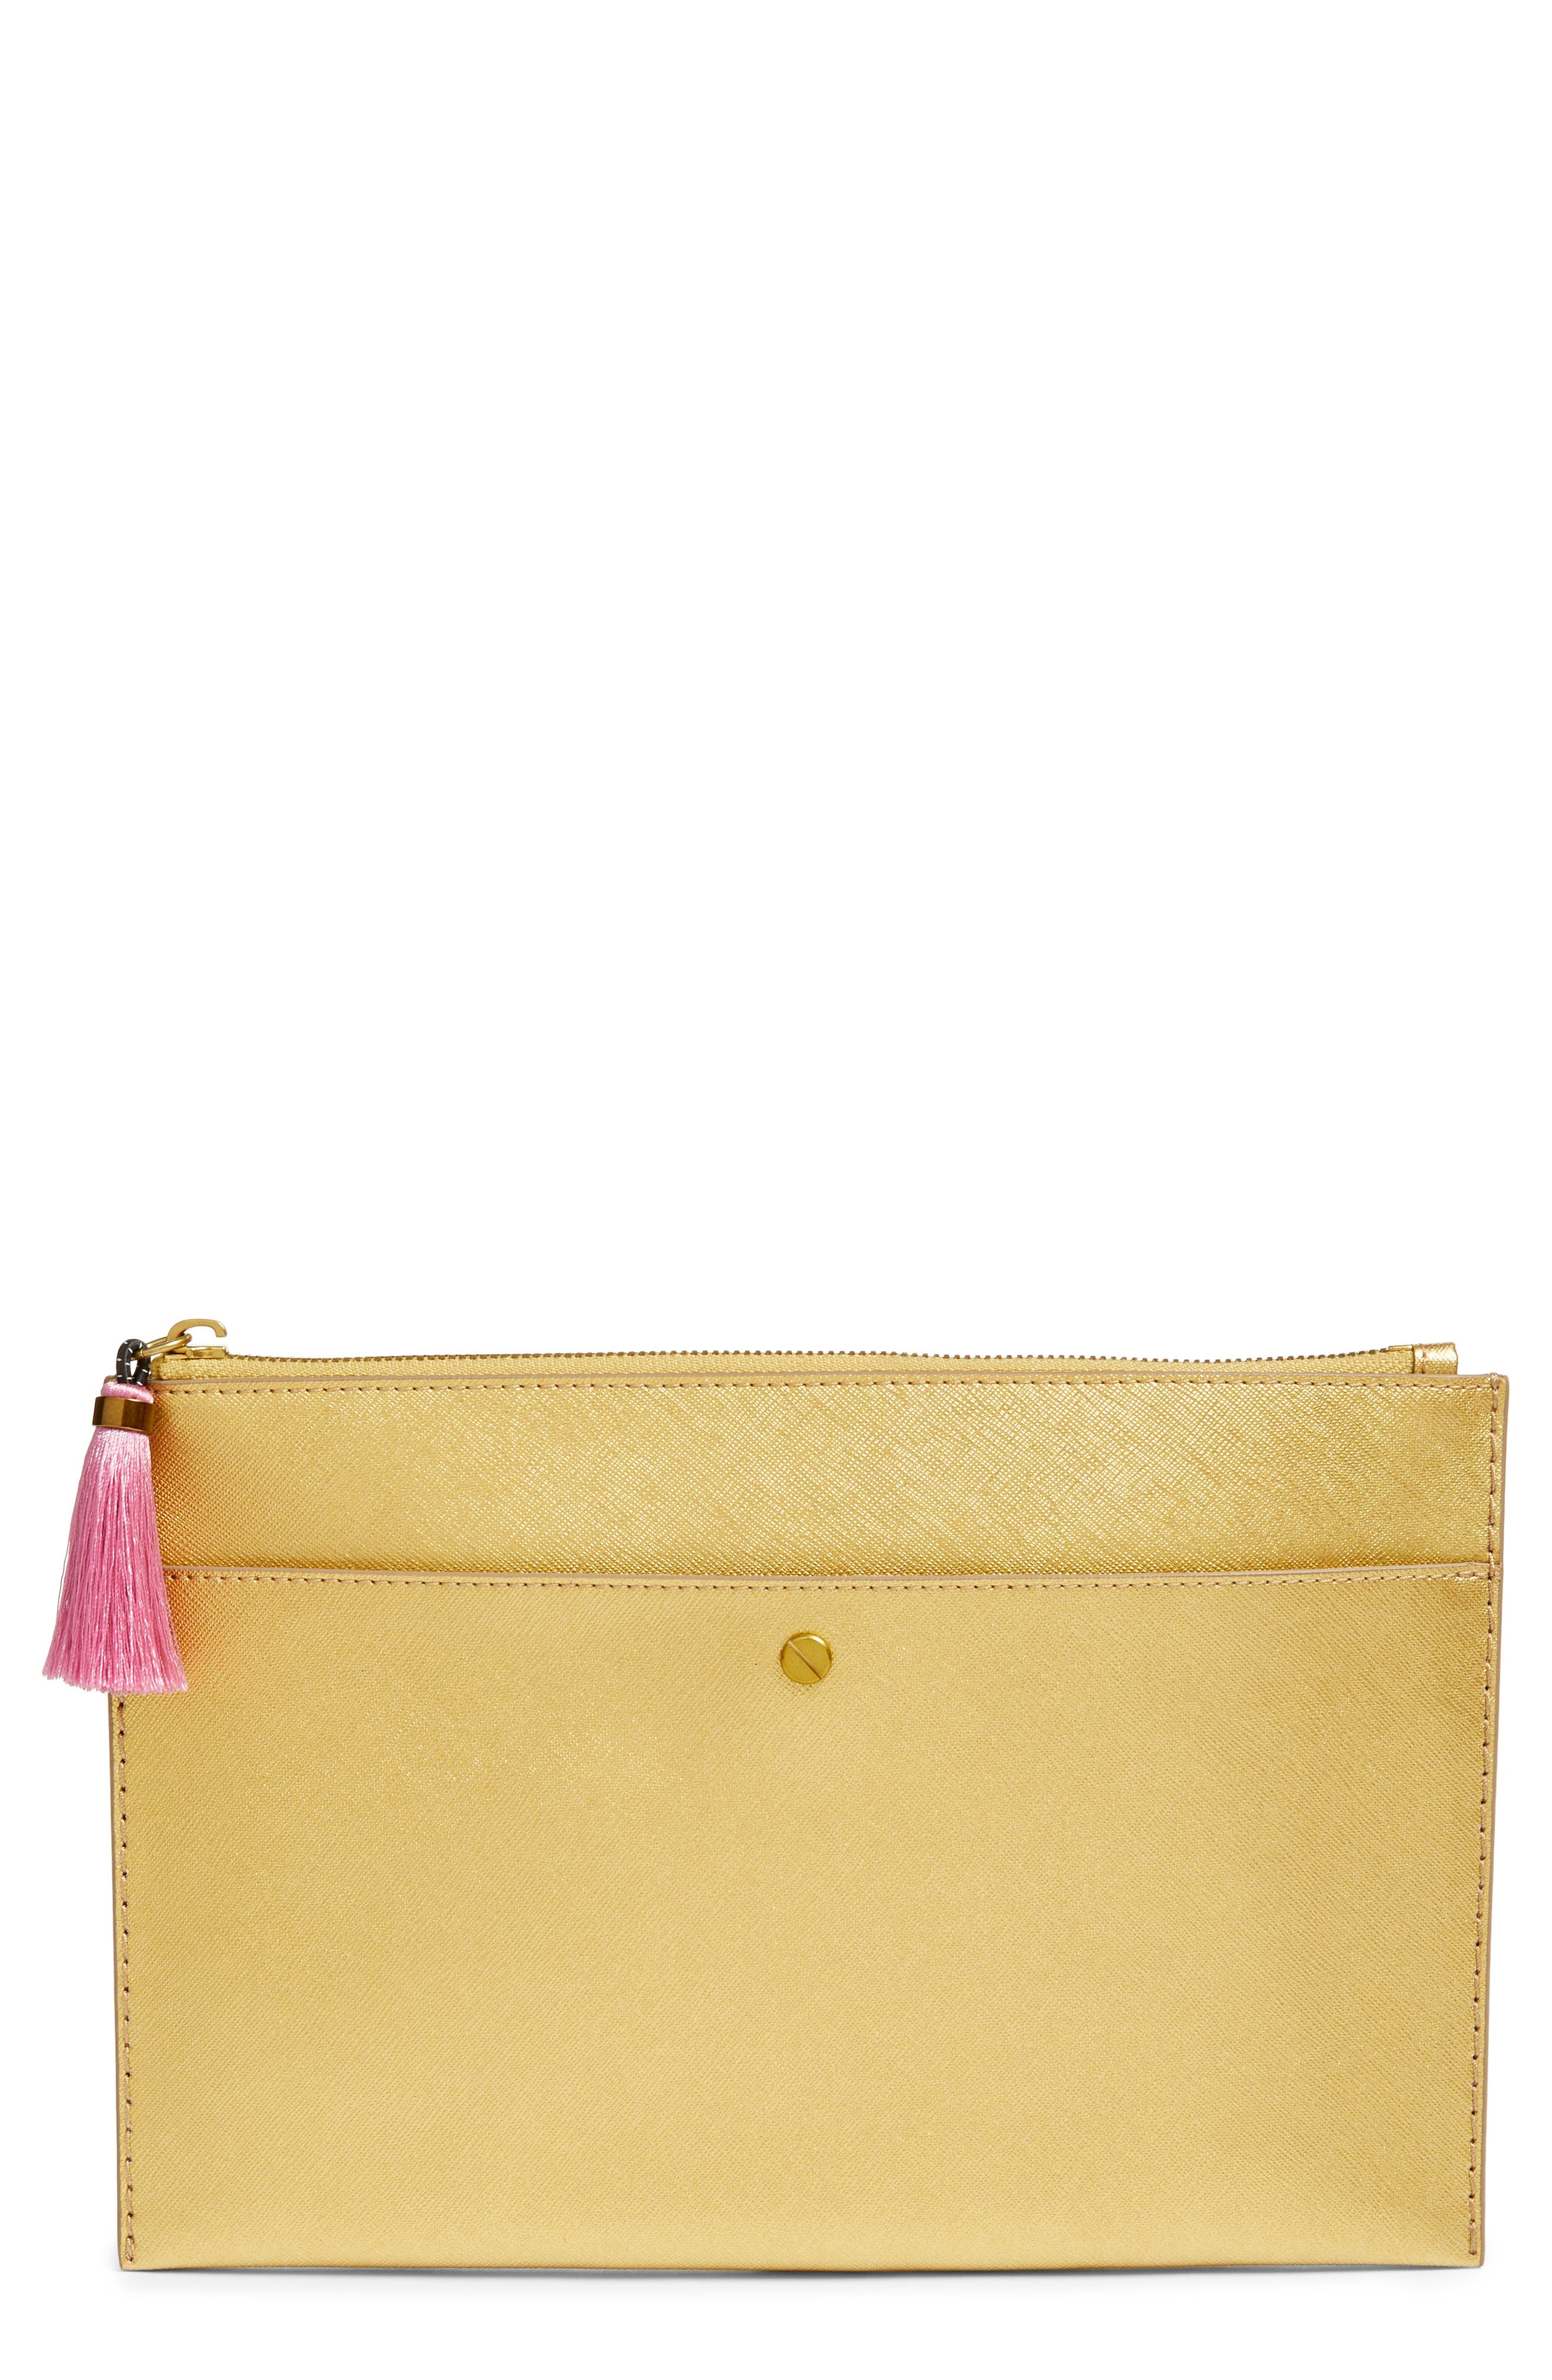 Main Image - J.Crew Large Saffiano Leather Pouch